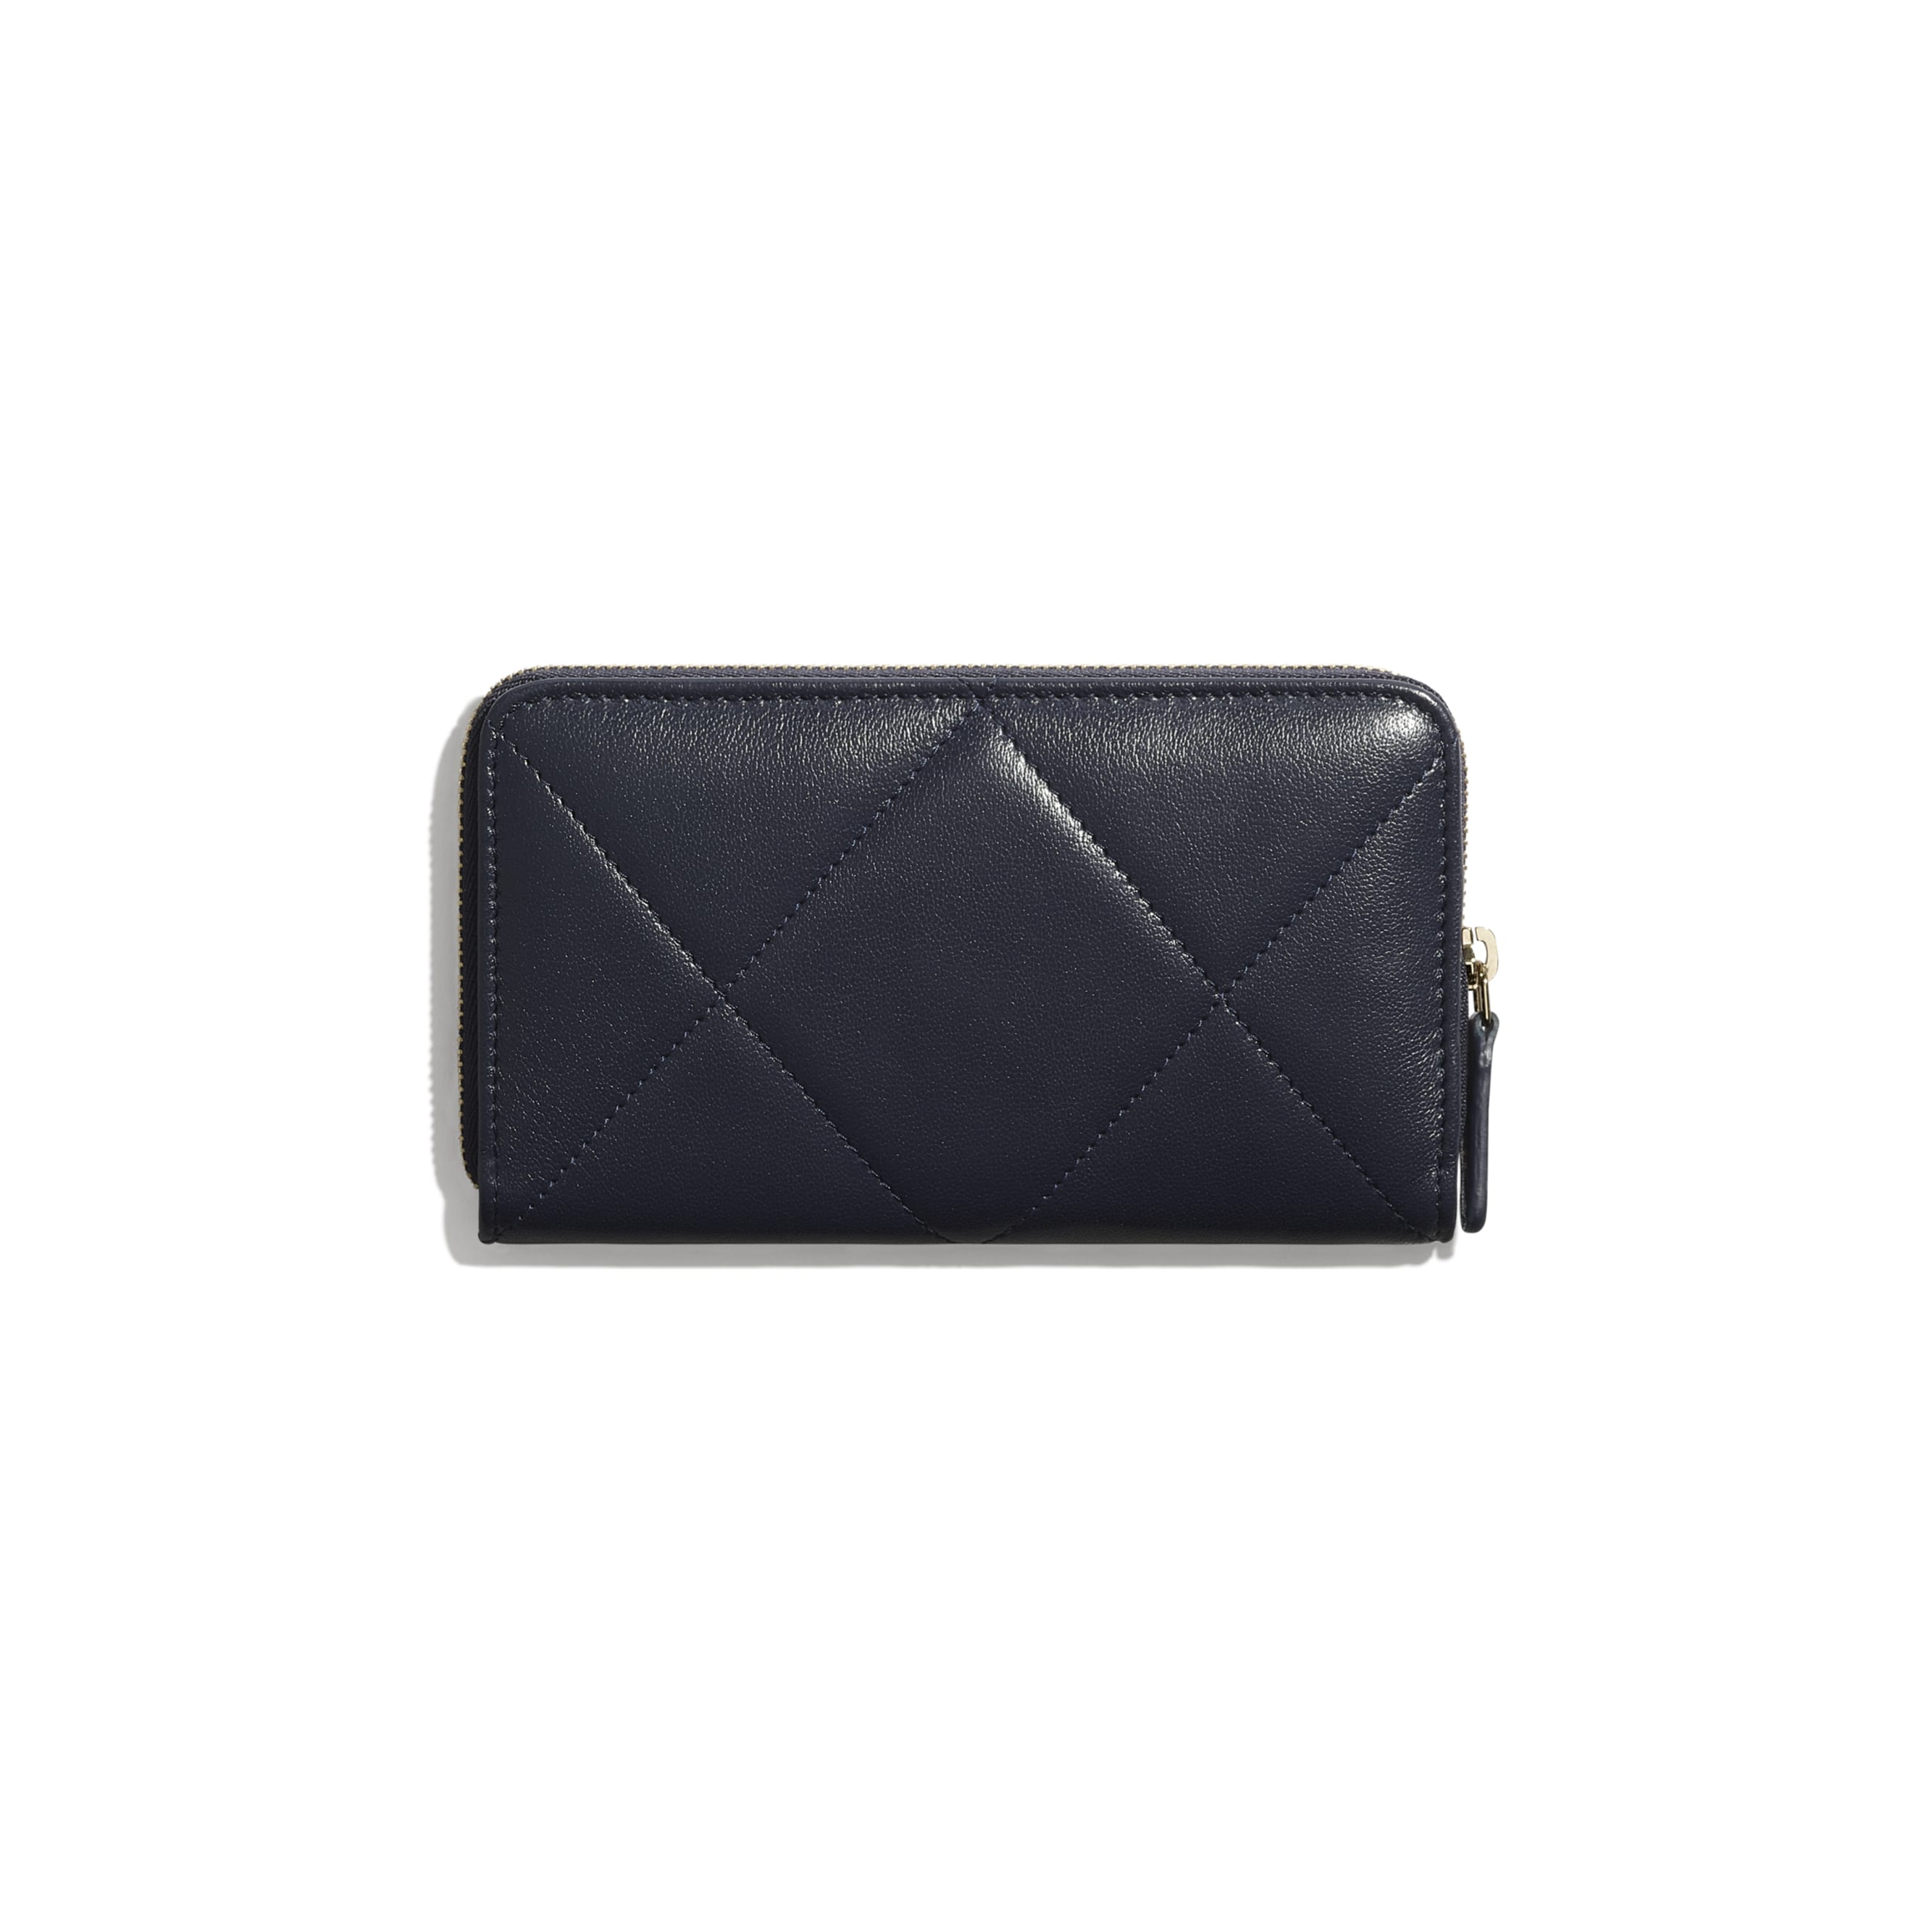 CHANEL 19 Zipped Wallet - Navy Blue - Lambskin, Gold-Tone, Silver-Tone & Ruthenium-Finish Metal - Alternative view - see standard sized version